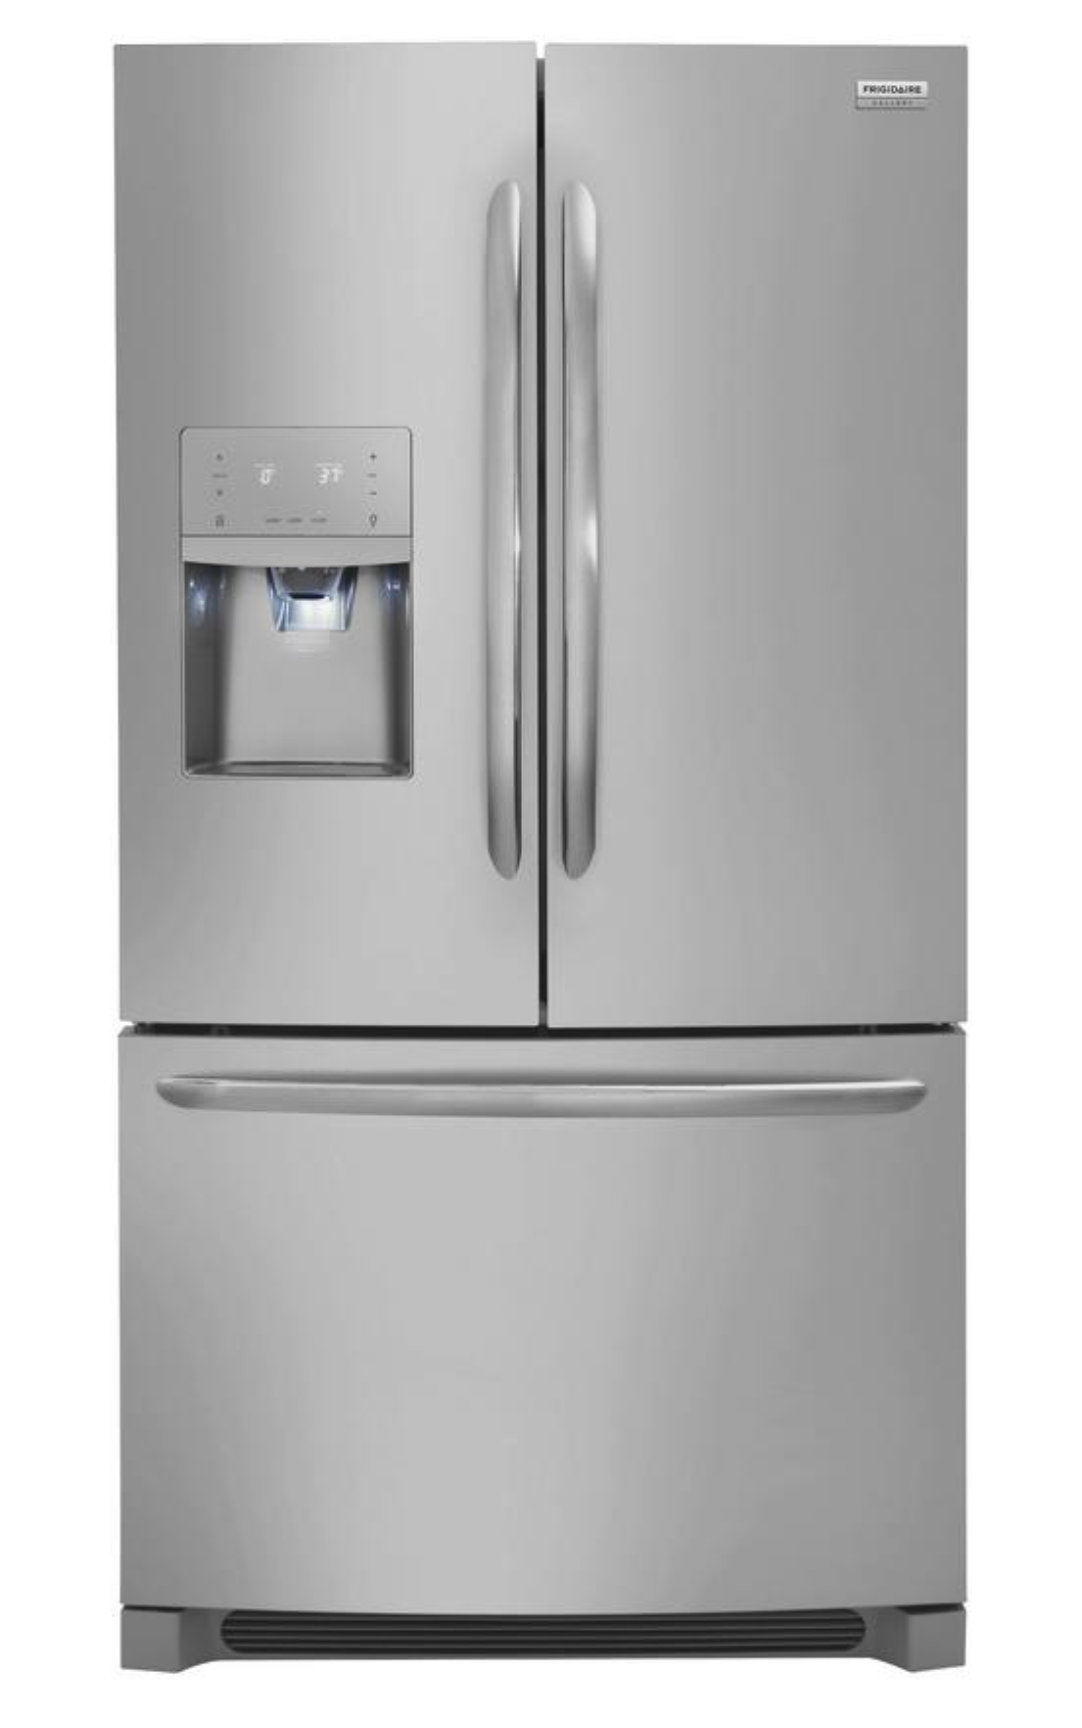 1. Fridge - Available from Fridgidaire